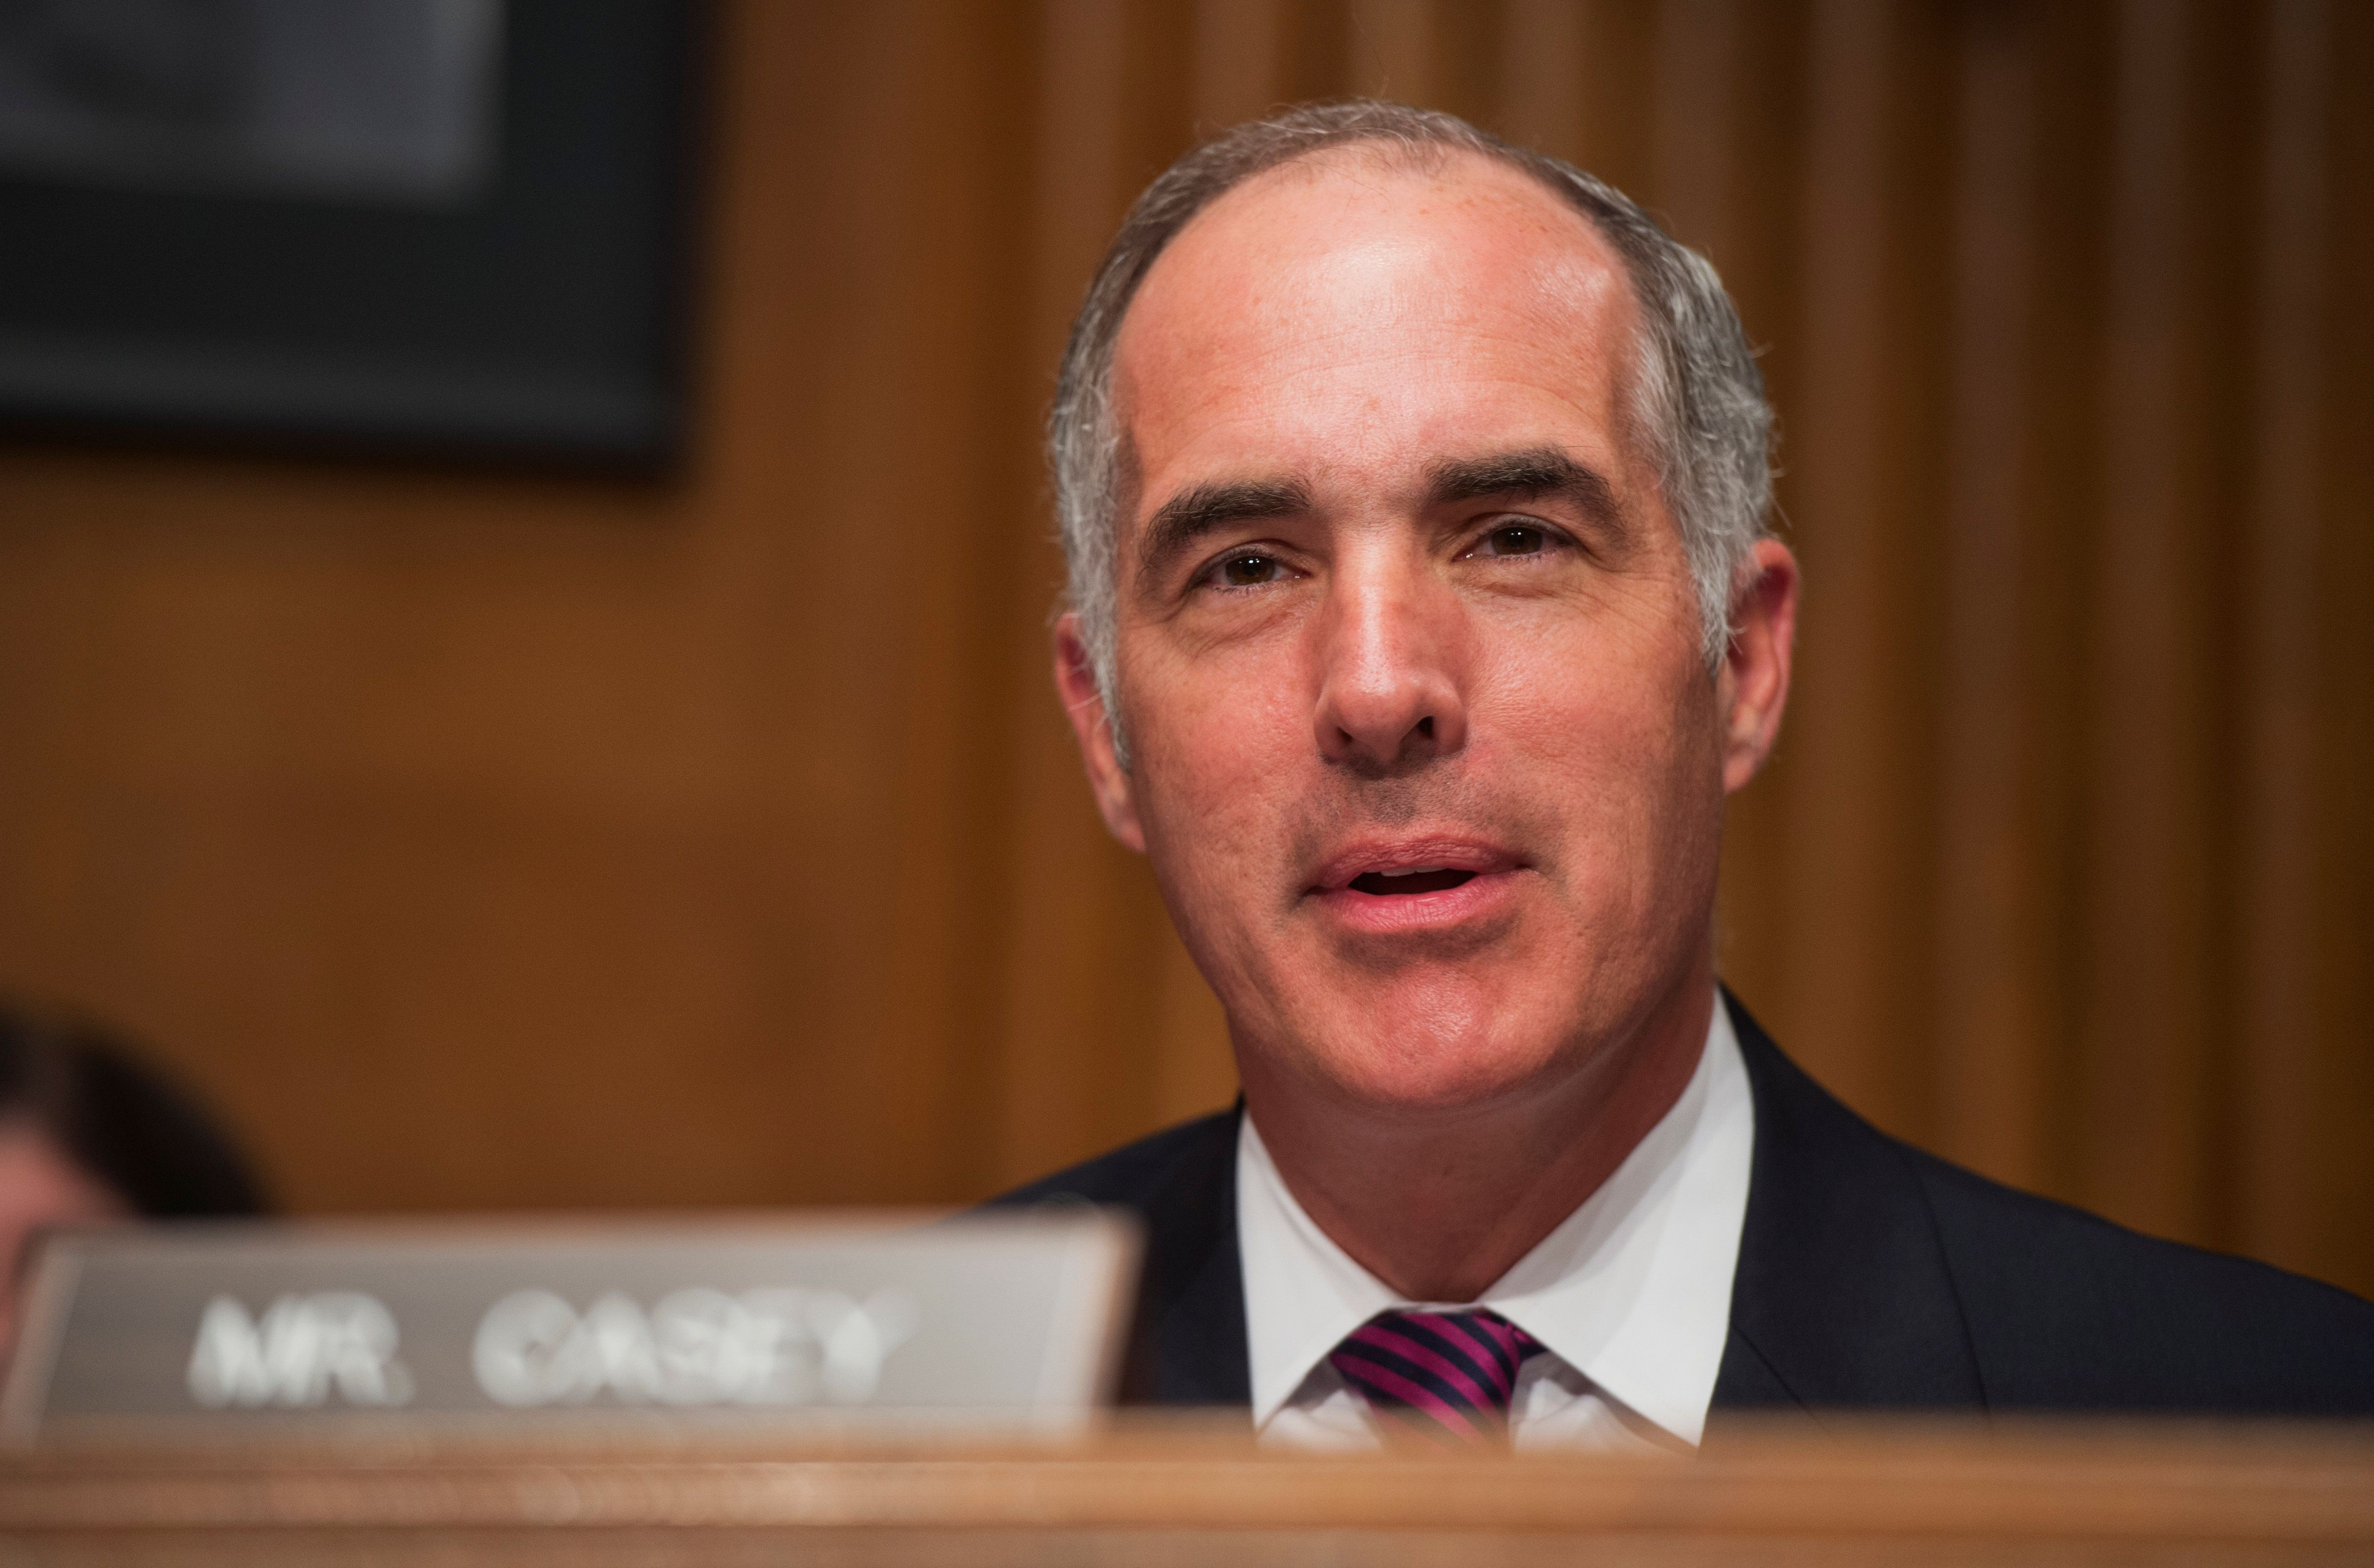 UNITED STATES - JULY 24: Sen. Bob Casey, D-Pa., makes a statement during Joint Economic Committee hearing in Dirksen Building on fixing the nation's deteriorating infrastructure. (Photo By Tom Williams/CQ Roll Call)